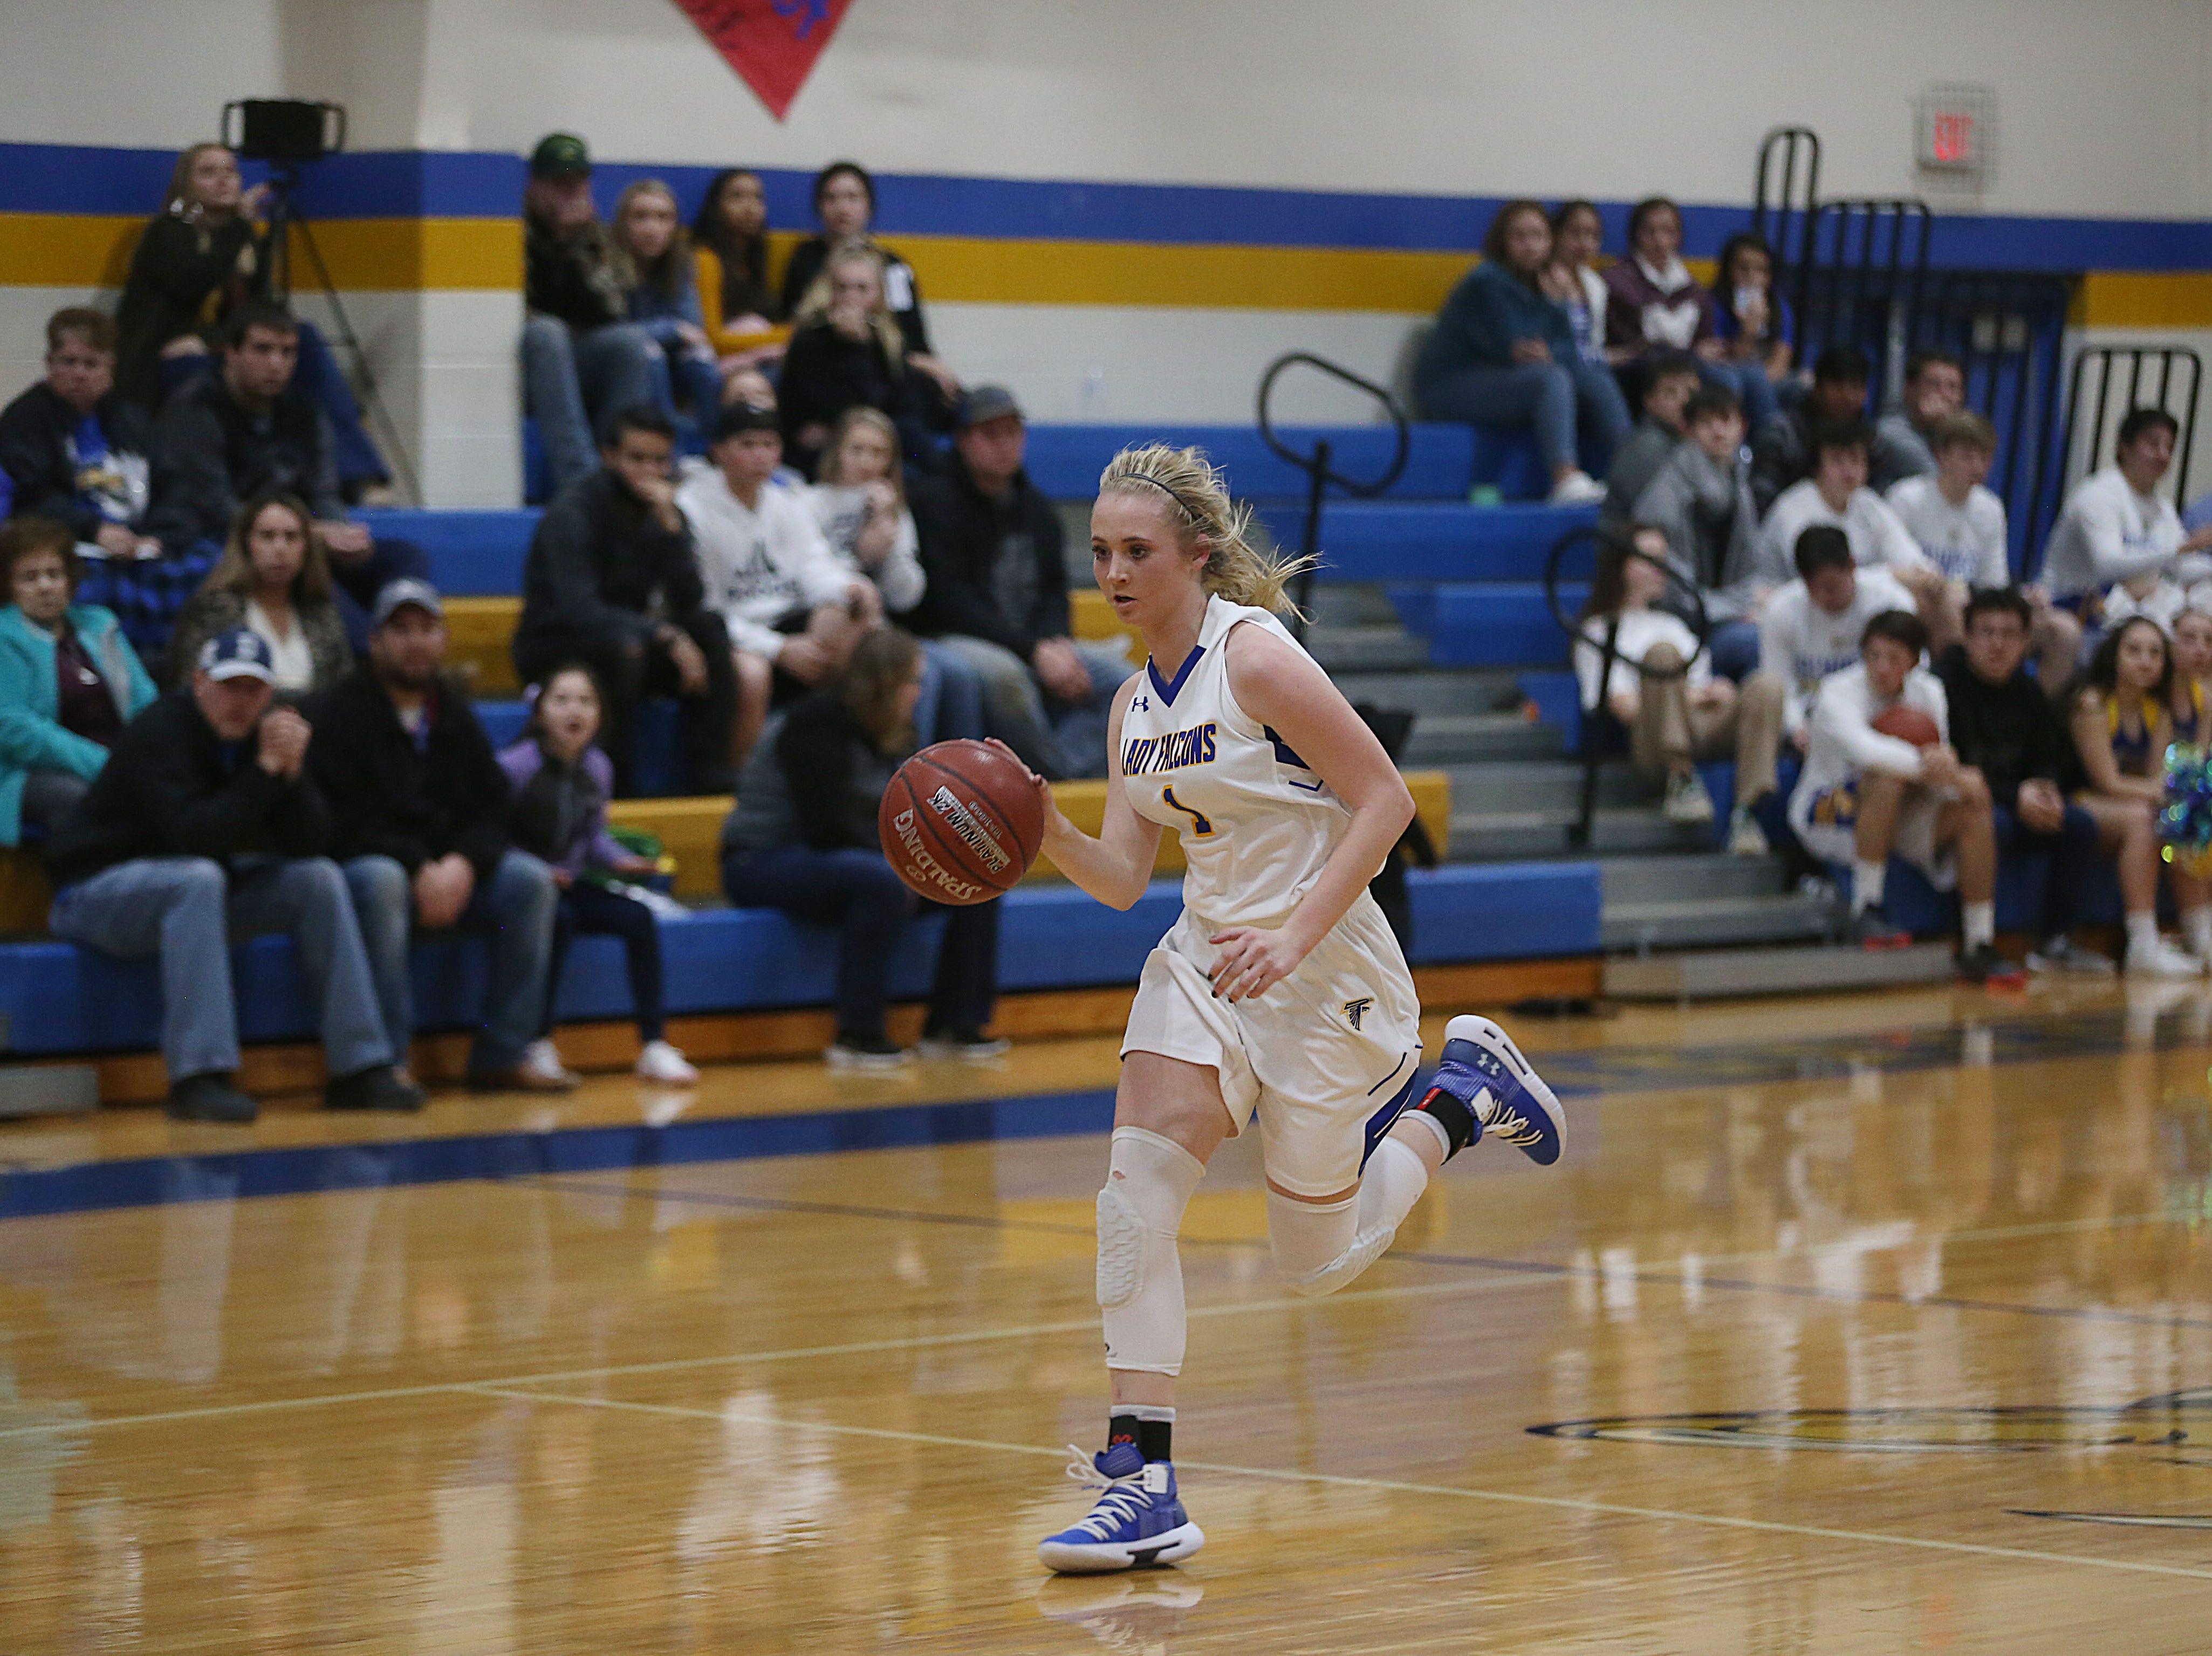 Veribest's Zoe Bratcher Catlyn Ward (#1) rushes to the basket Tuesday, Jan. 8, 2019 during the game against Water Valley in Veribest.